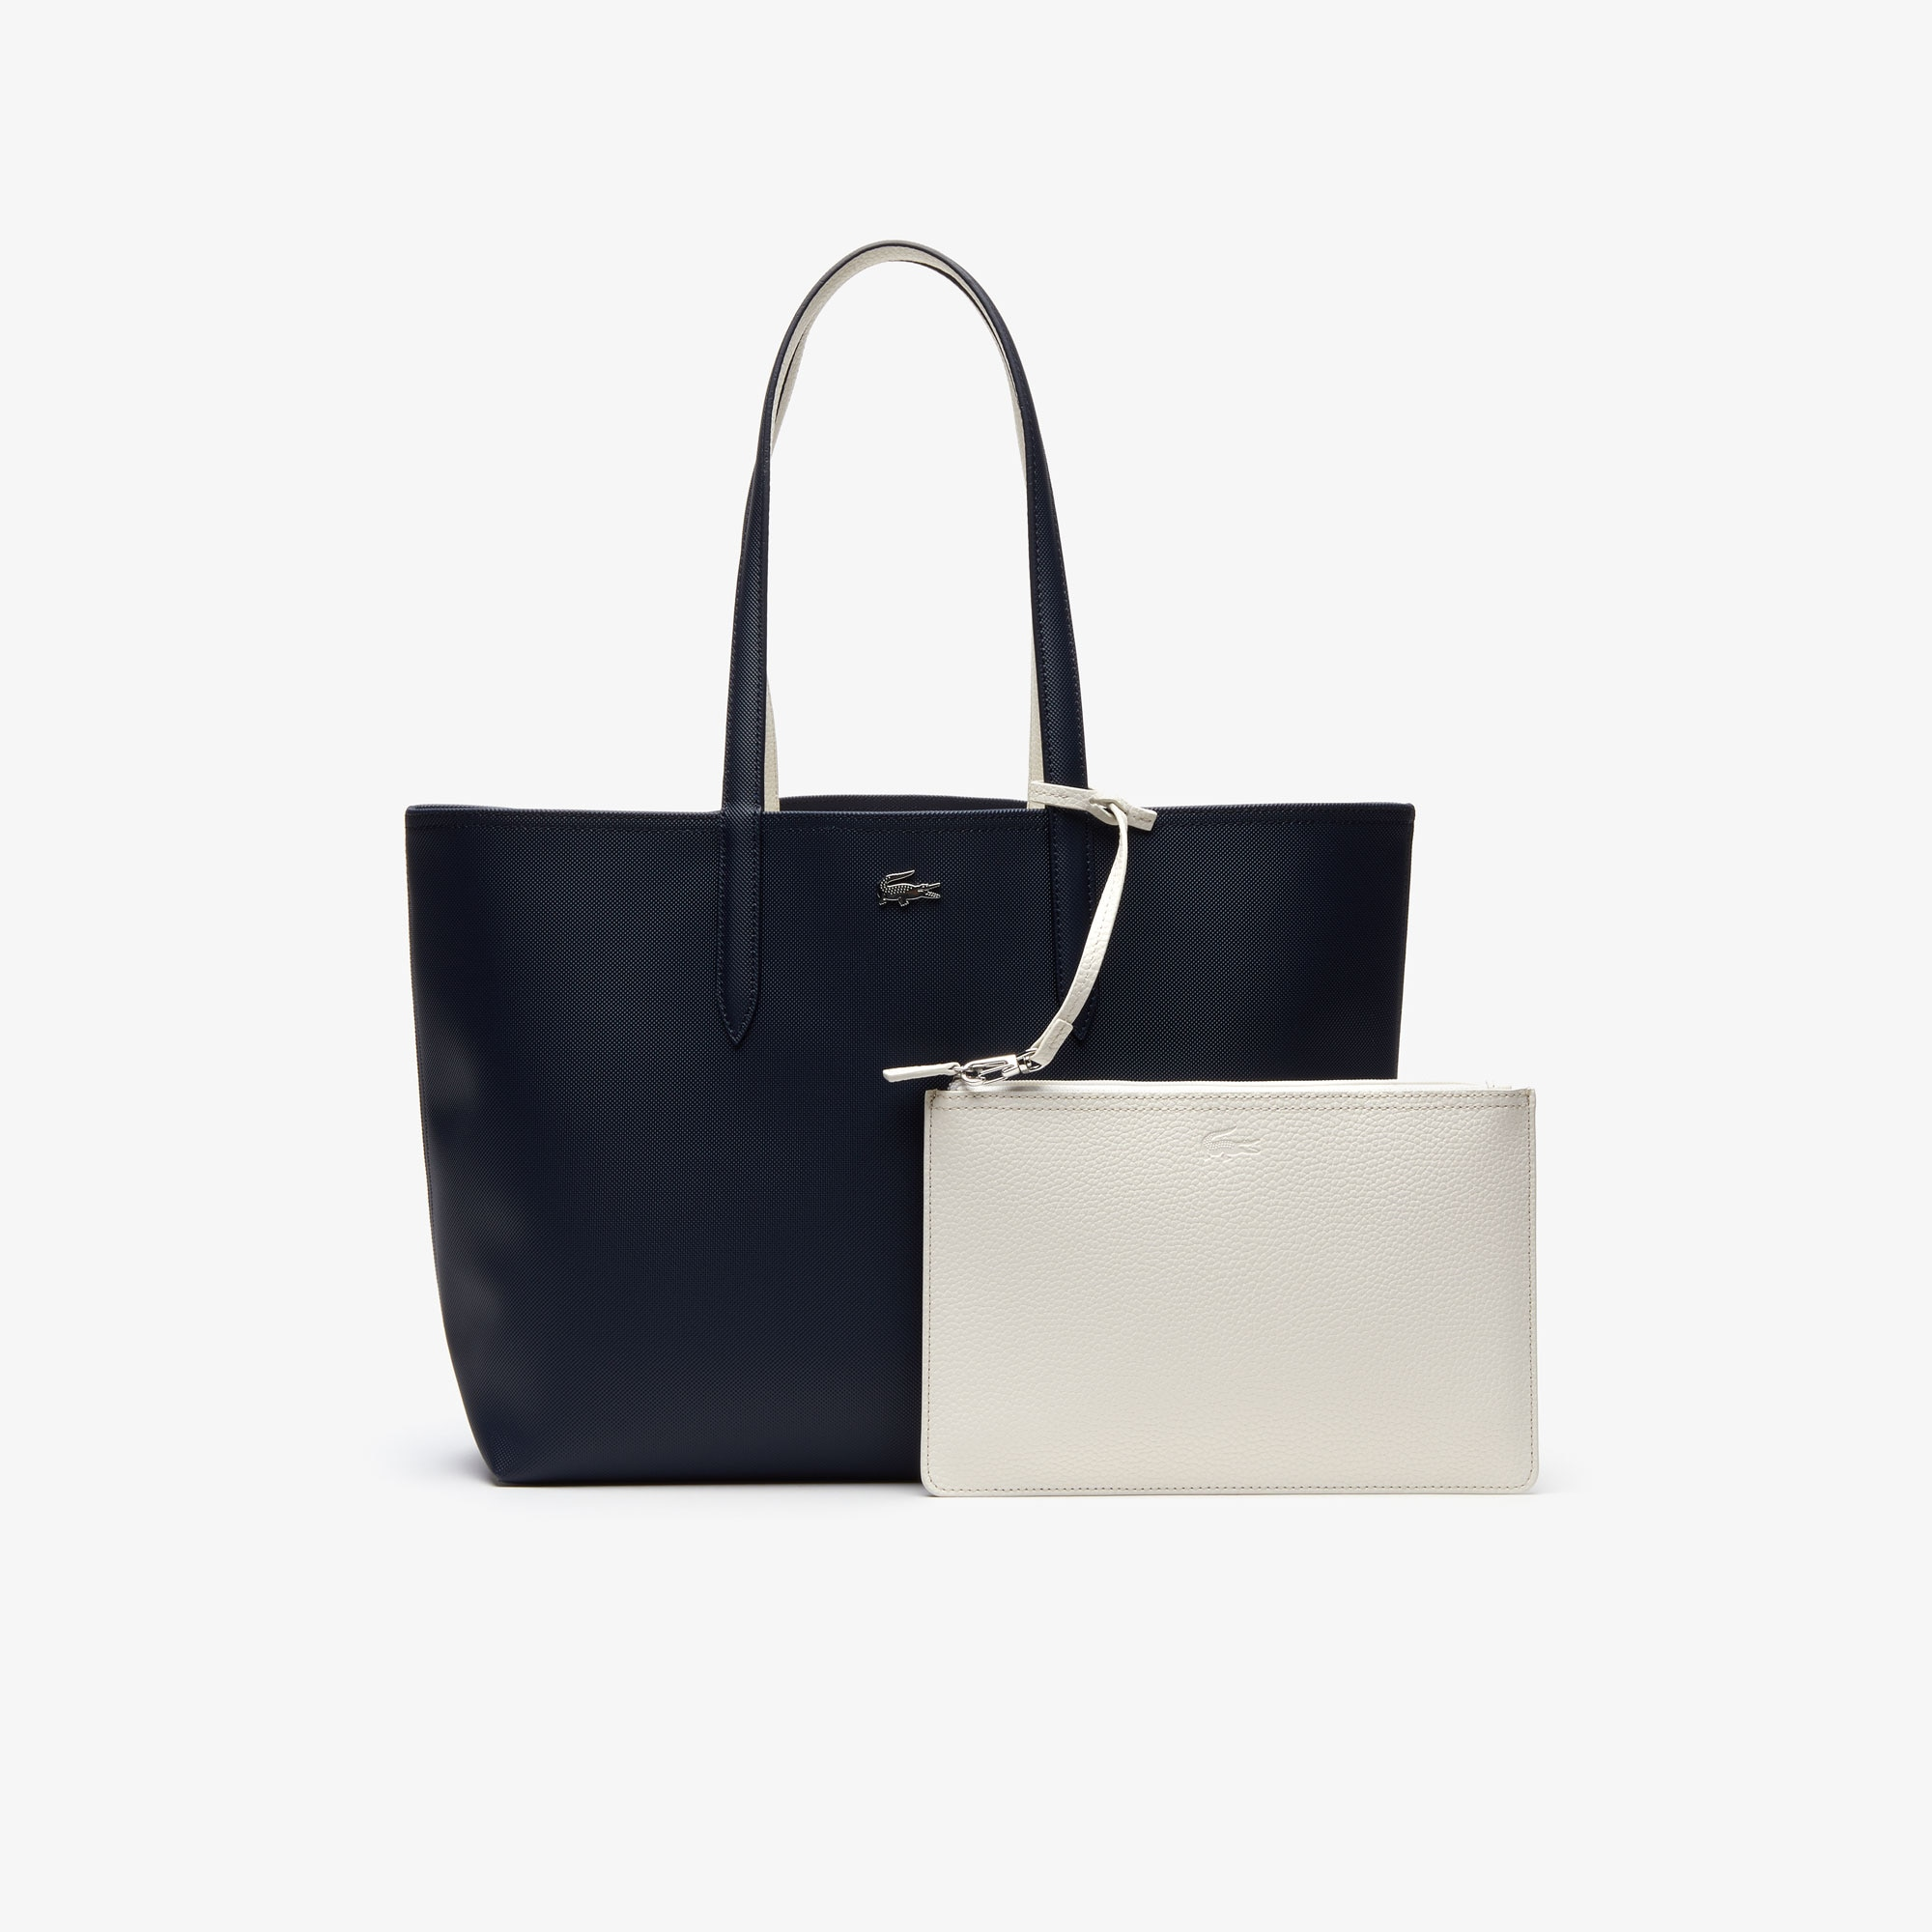 Bags Handbags Collection Women S Leather Goods Lacoste